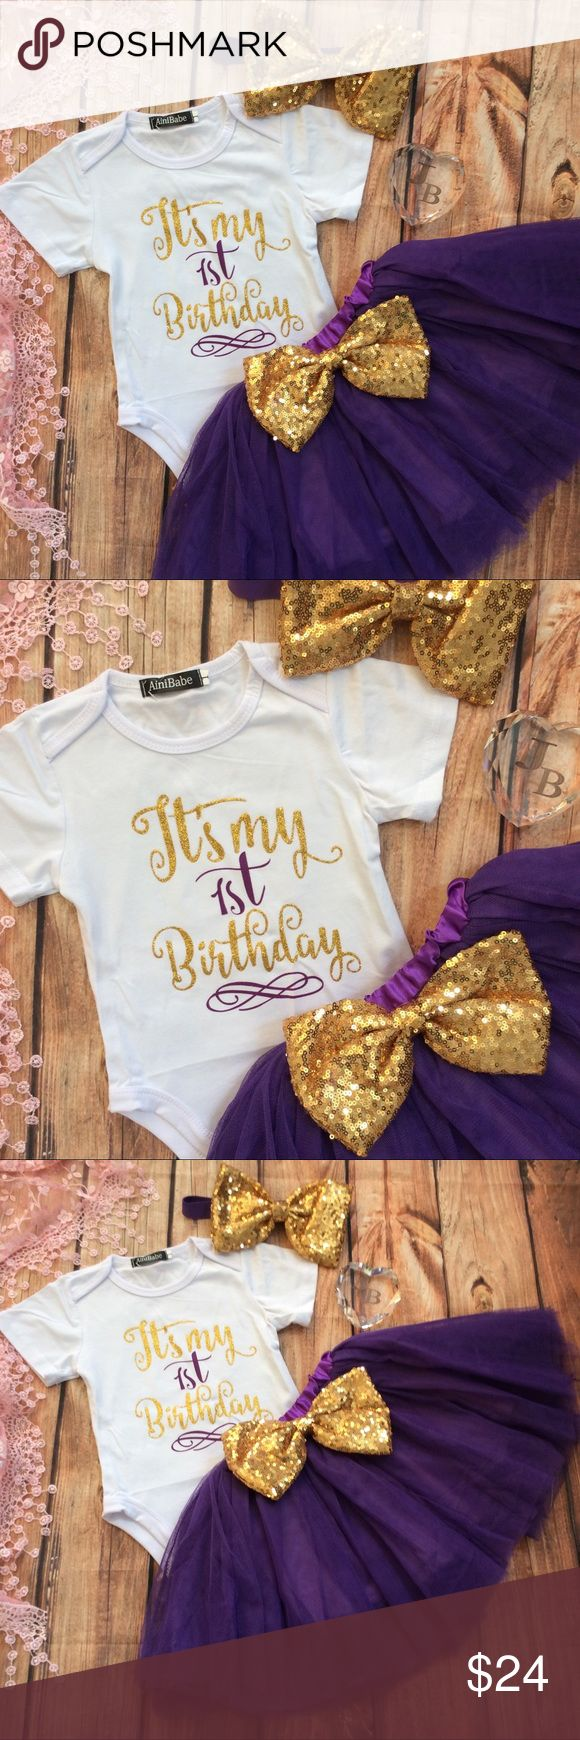 Boutique Baby Girl 1st Birthday Tutu 3pc Outfit Precious white short sleeve onesie with purple ITS MY FIRST BIRTHDAY across the front in purple and glitter gold. Matching full dark purple Tutu chiffon skirt with lining. Large gold sequin bow at waist. Includes a large gold sequin headband. Perfect for birthday party, cake smash photos and dress up for photos on this special milestone event!! Dresses